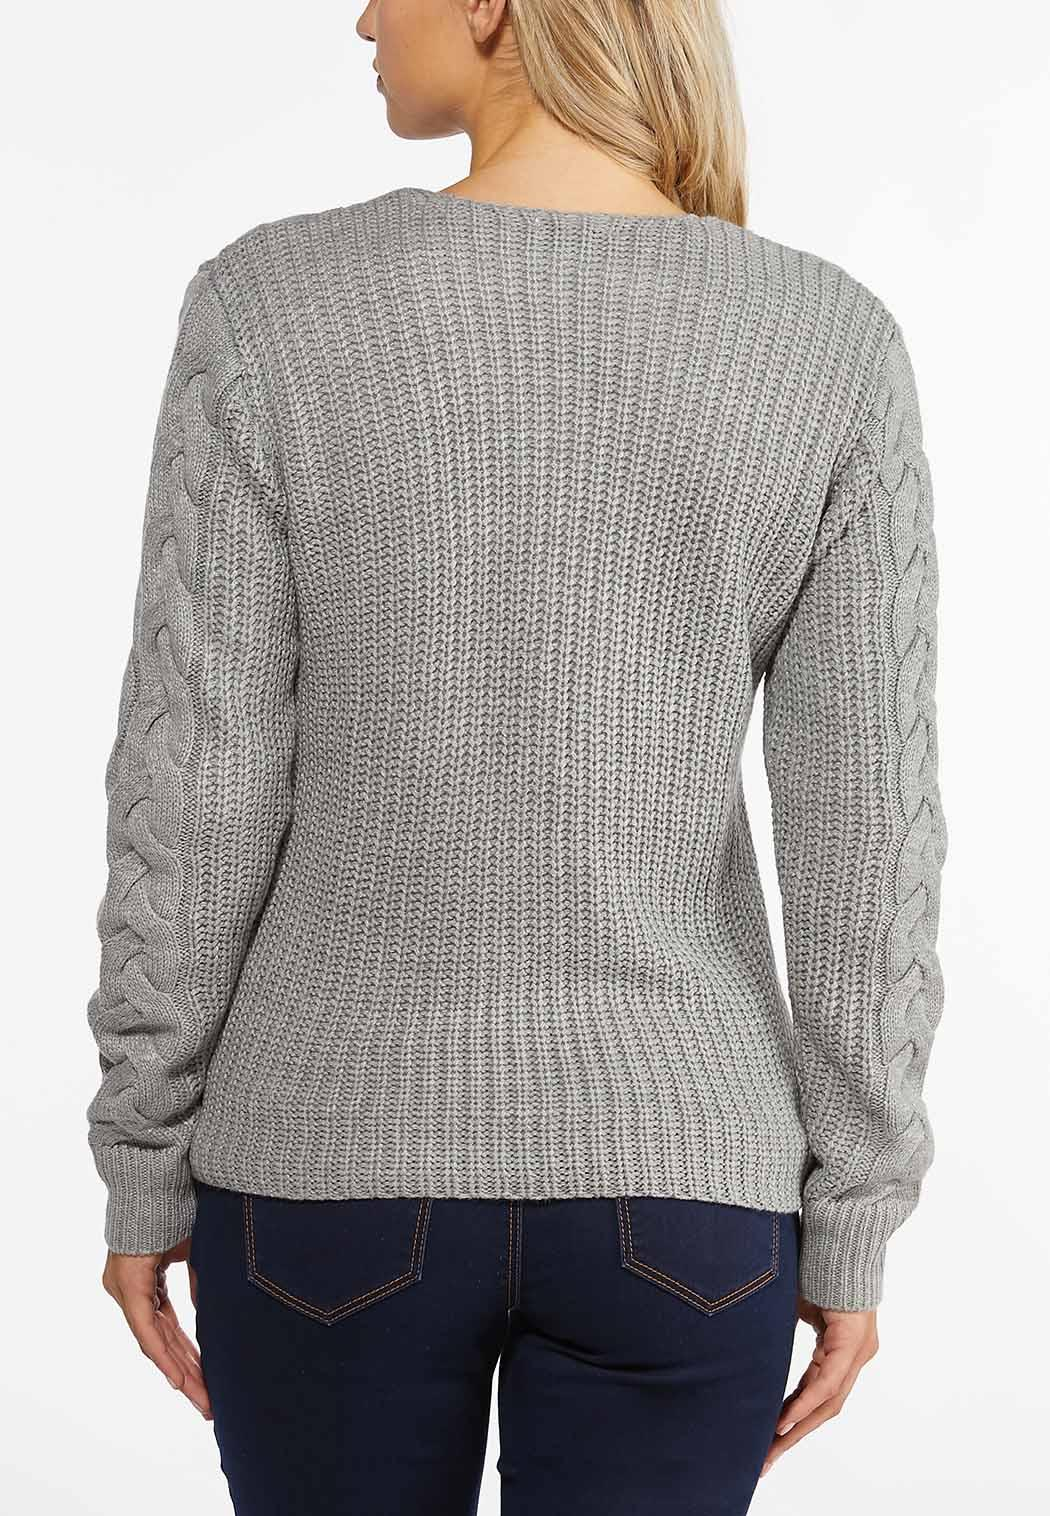 Plus Size Cable Knit Cardigan Sweater (Item #44435532)